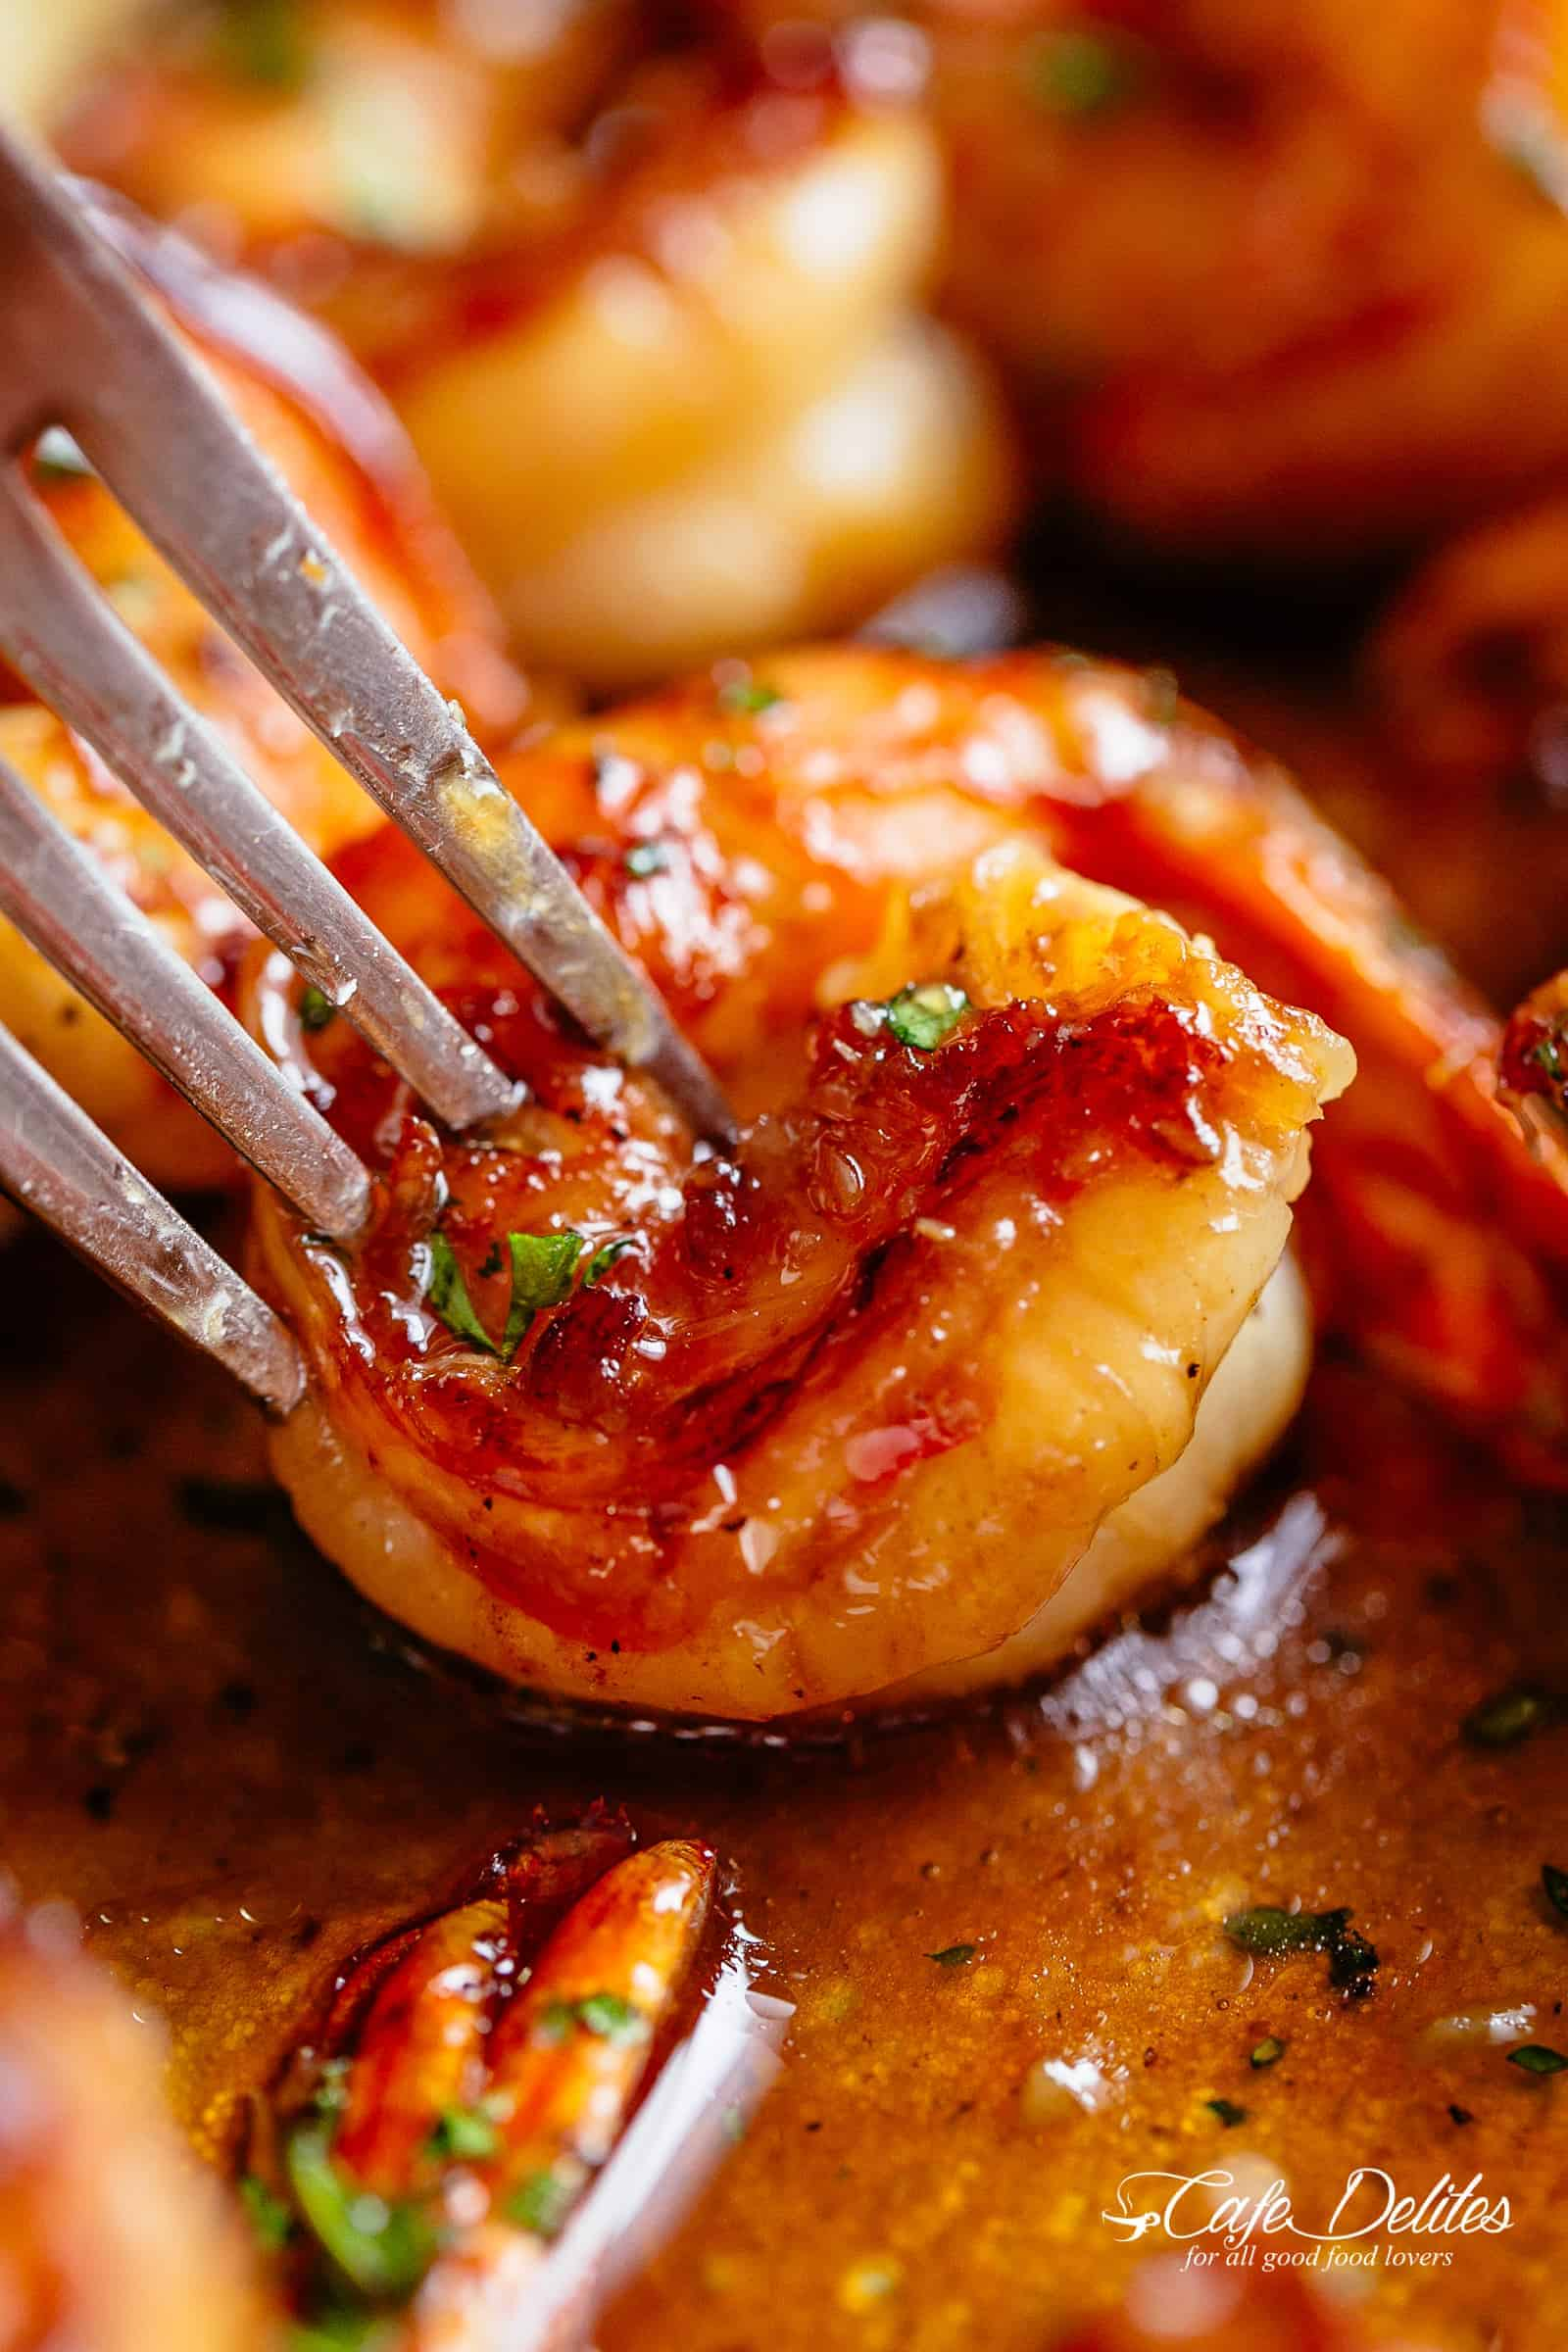 Shrimp recipes | cafedelites.com